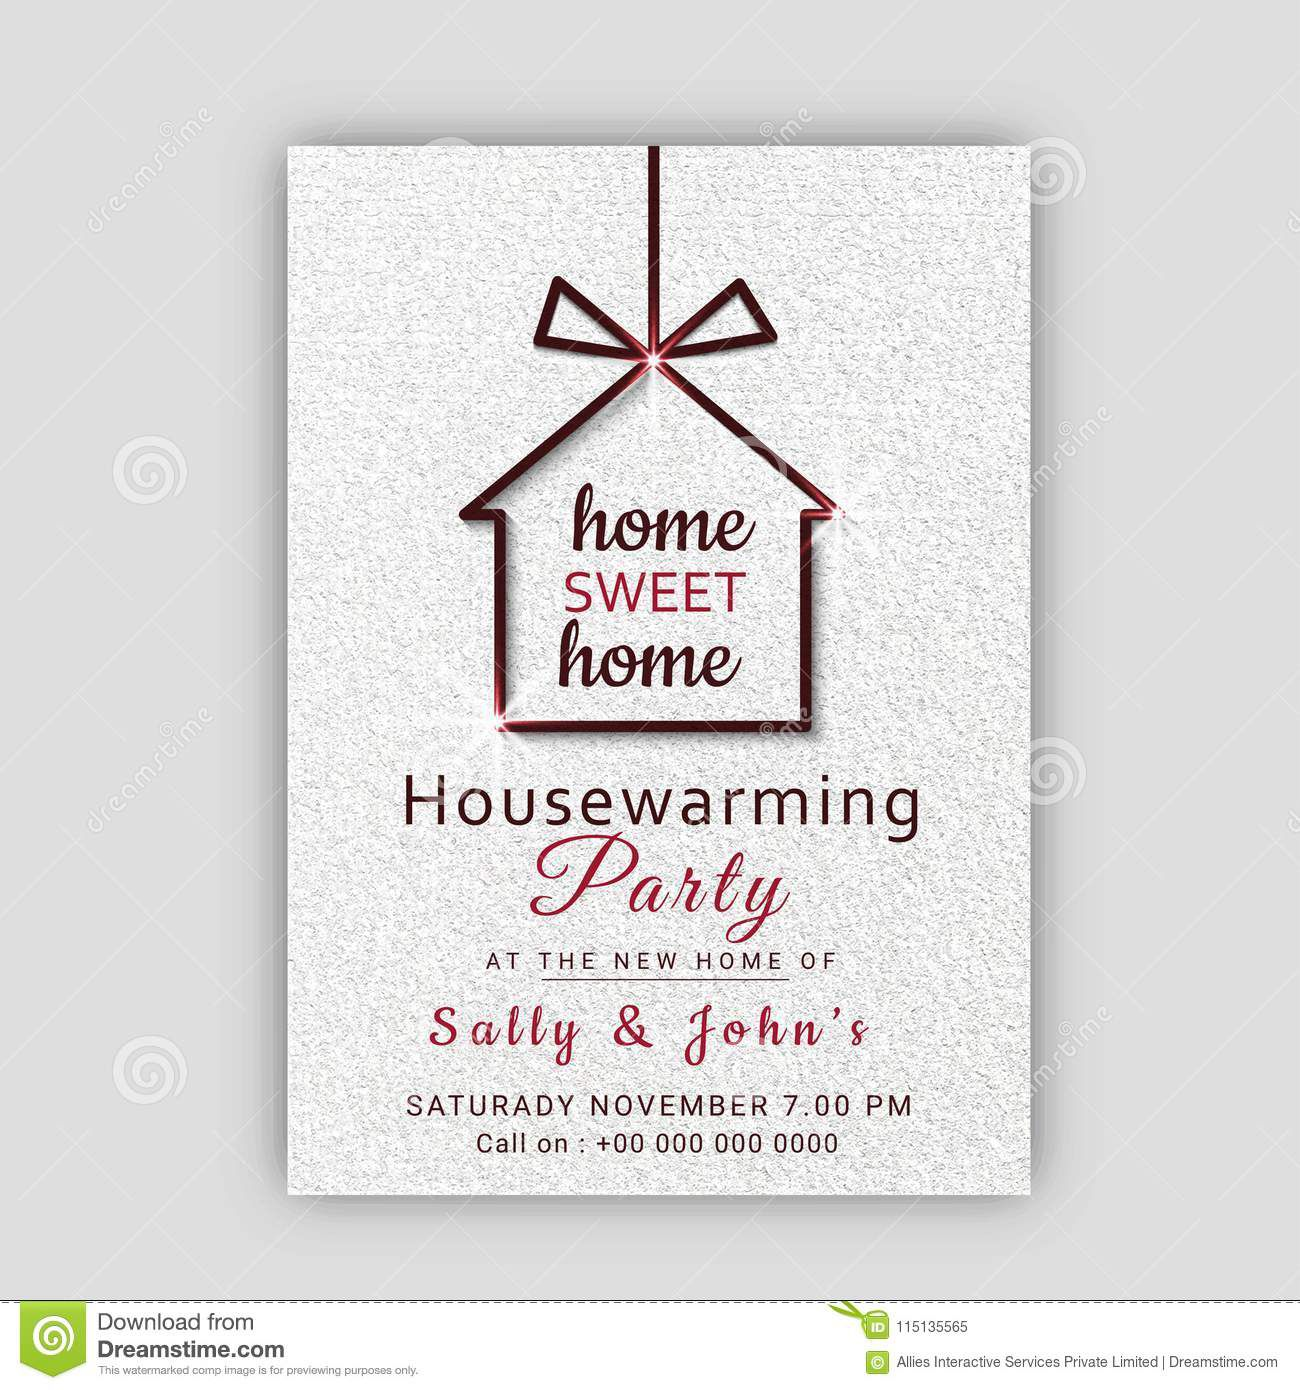 009 Stupendou Housewarming Party Invitation Template Inspiration  Templates Free Download CardFull